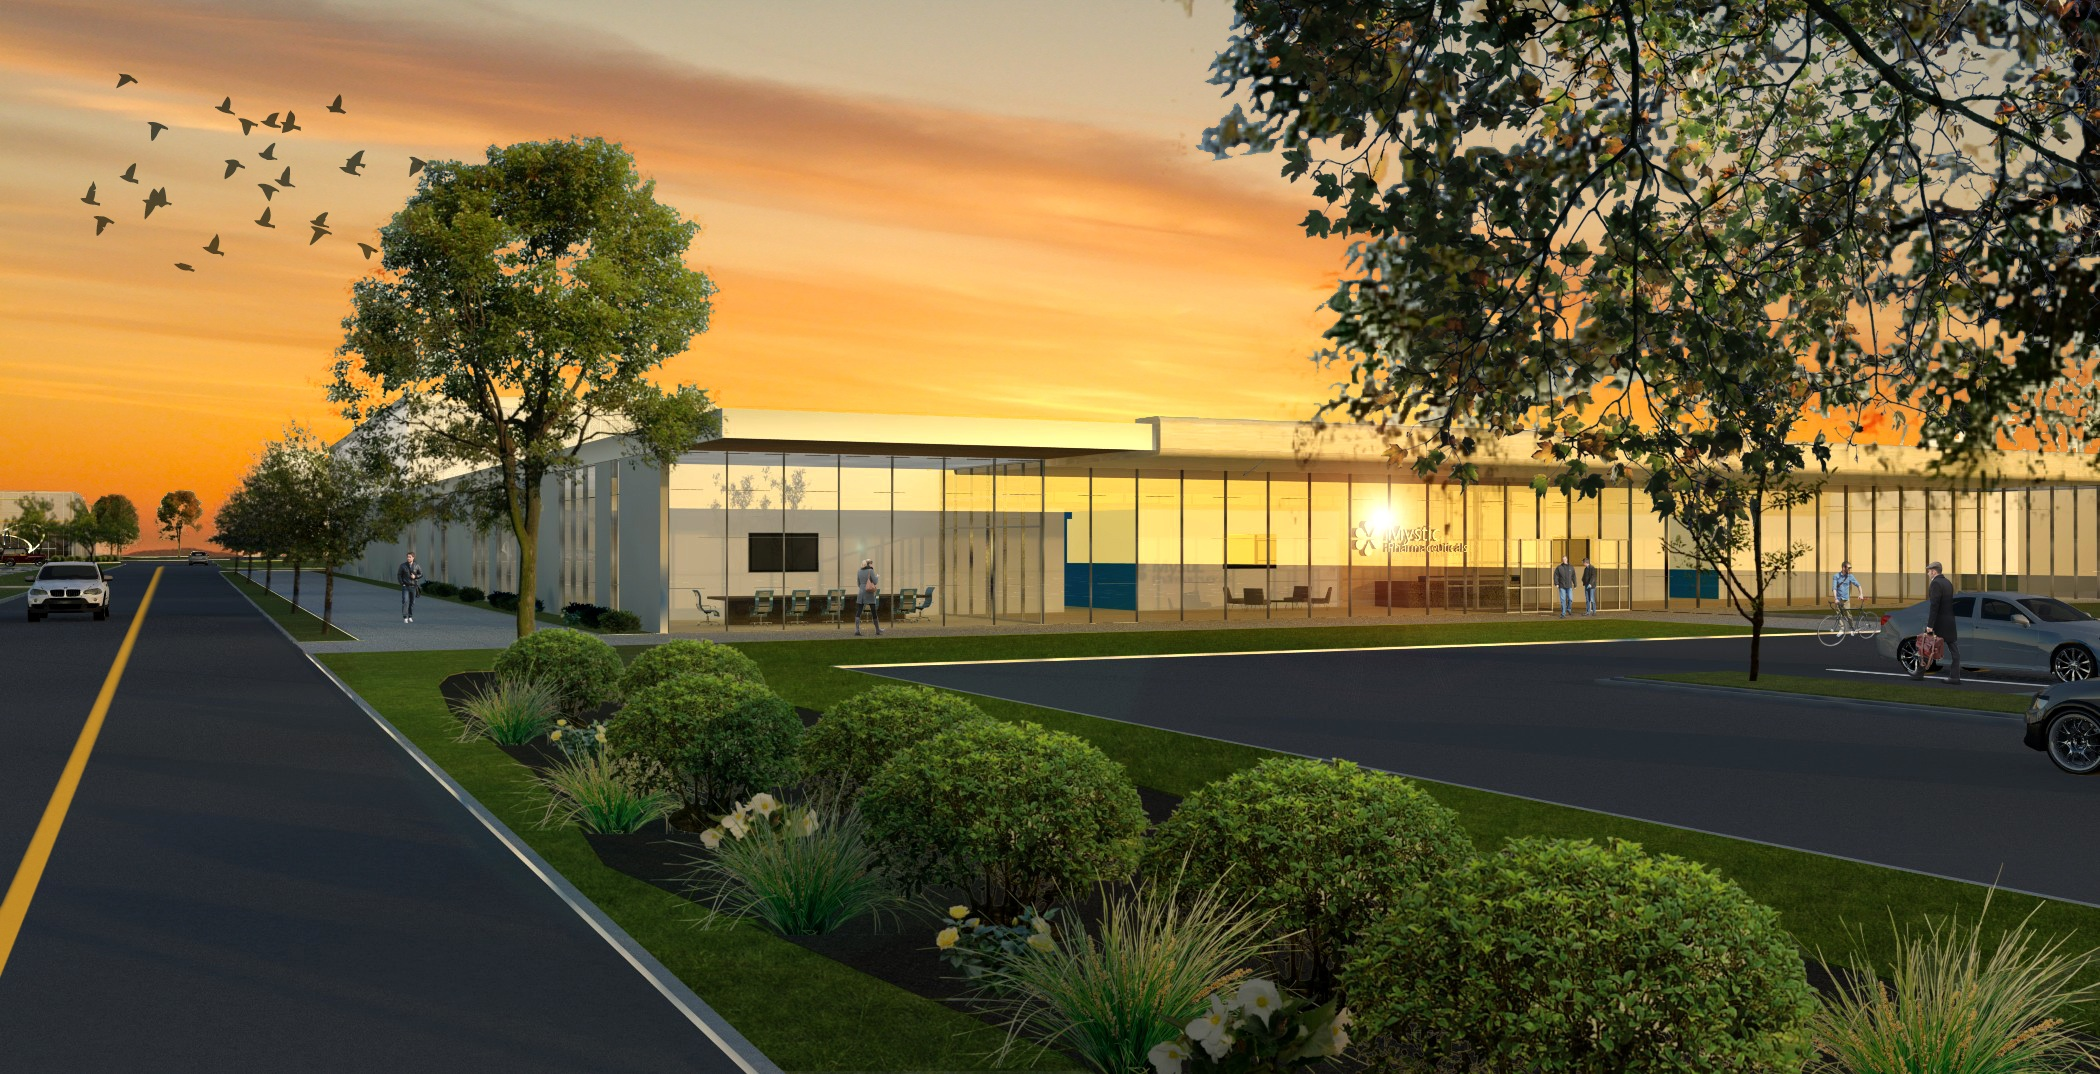 cedar park innovation center - 75,000 sf  Austin, TX - Development advisory services  and d  esign by Larivey